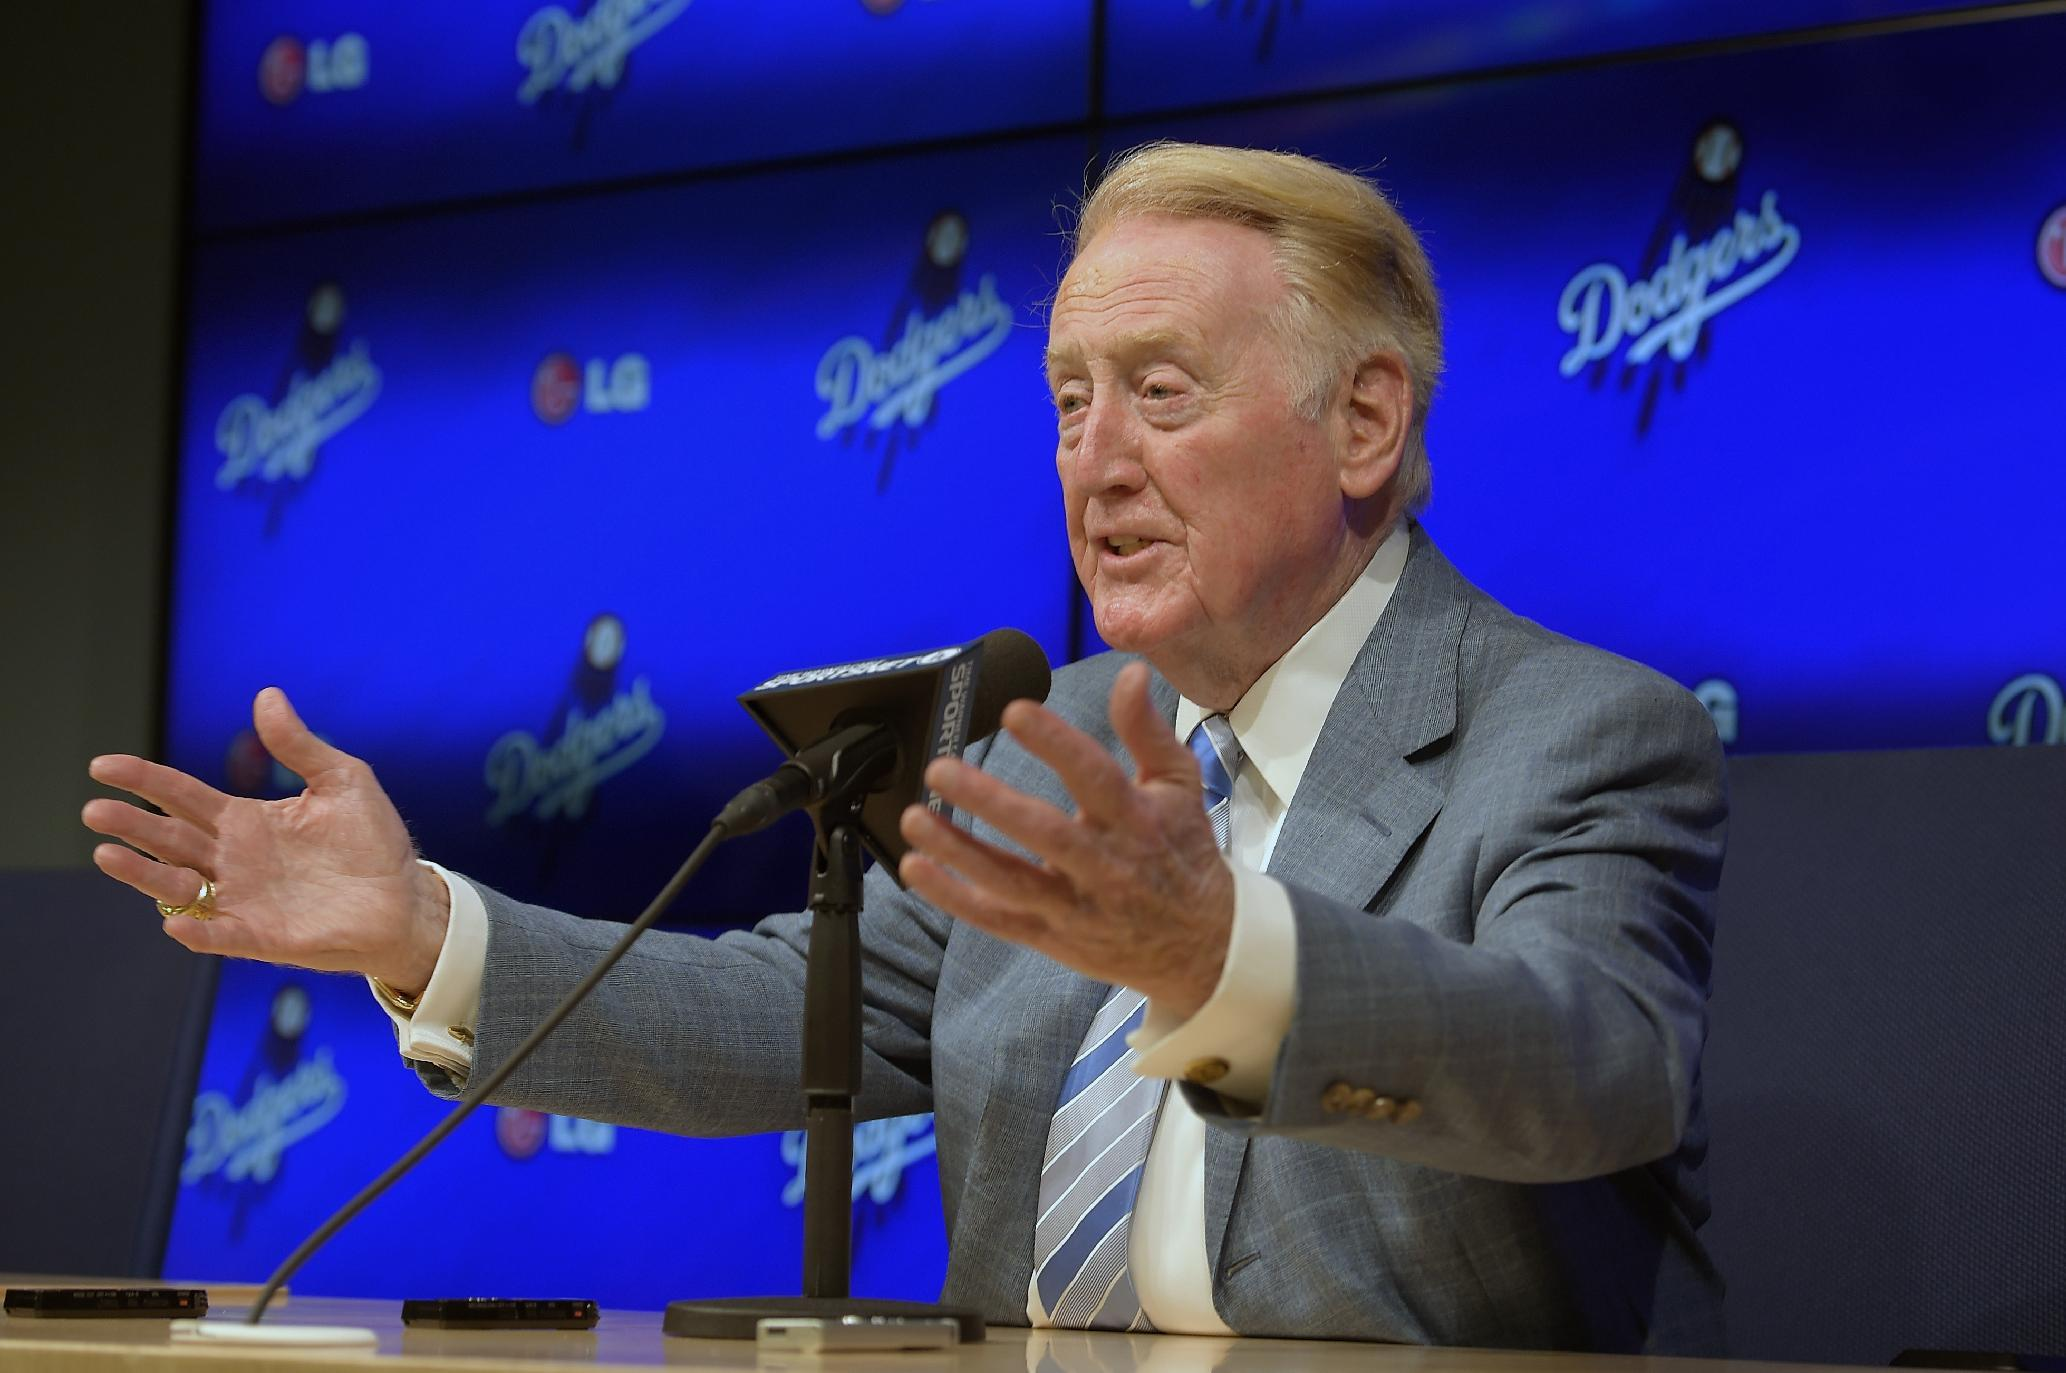 Vin Scully will return for 67th season in Dodgers television booth